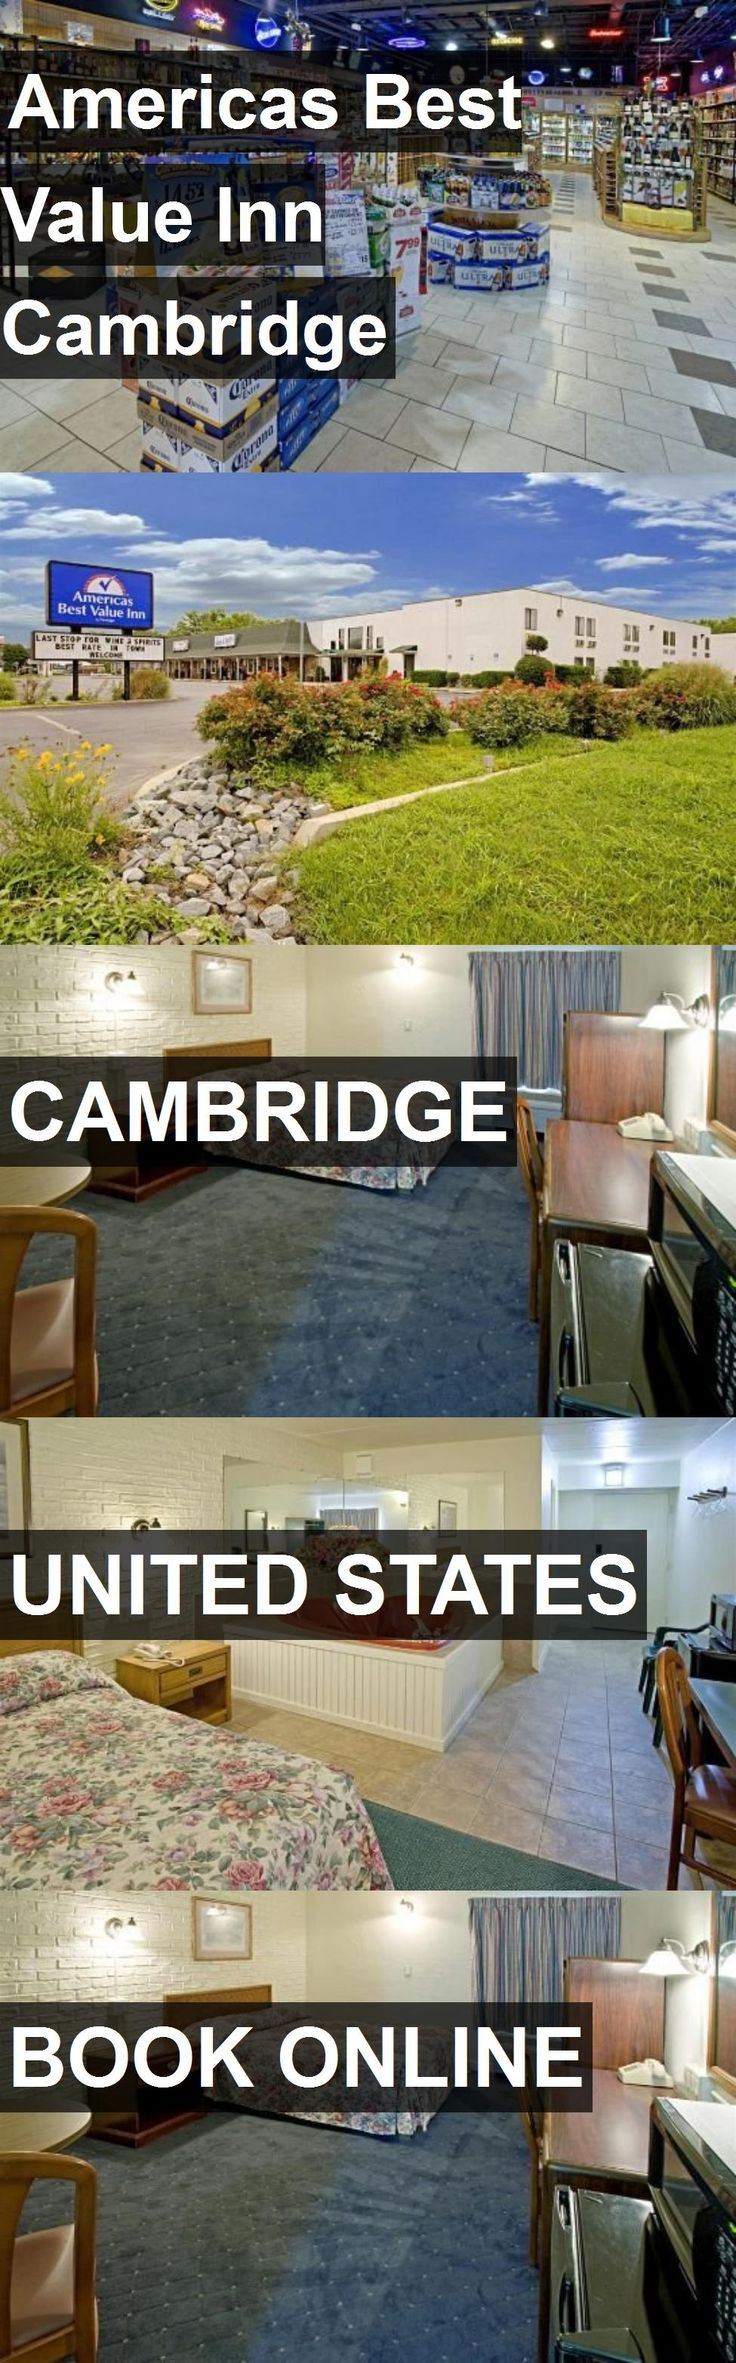 Hotel Americas Best Value Inn Cambridge in Cambridge, United States. For more information, photos, reviews and best prices please follow the link. #UnitedStates #Cambridge #AmericasBestValueInnCambridge #hotel #travel #vacation